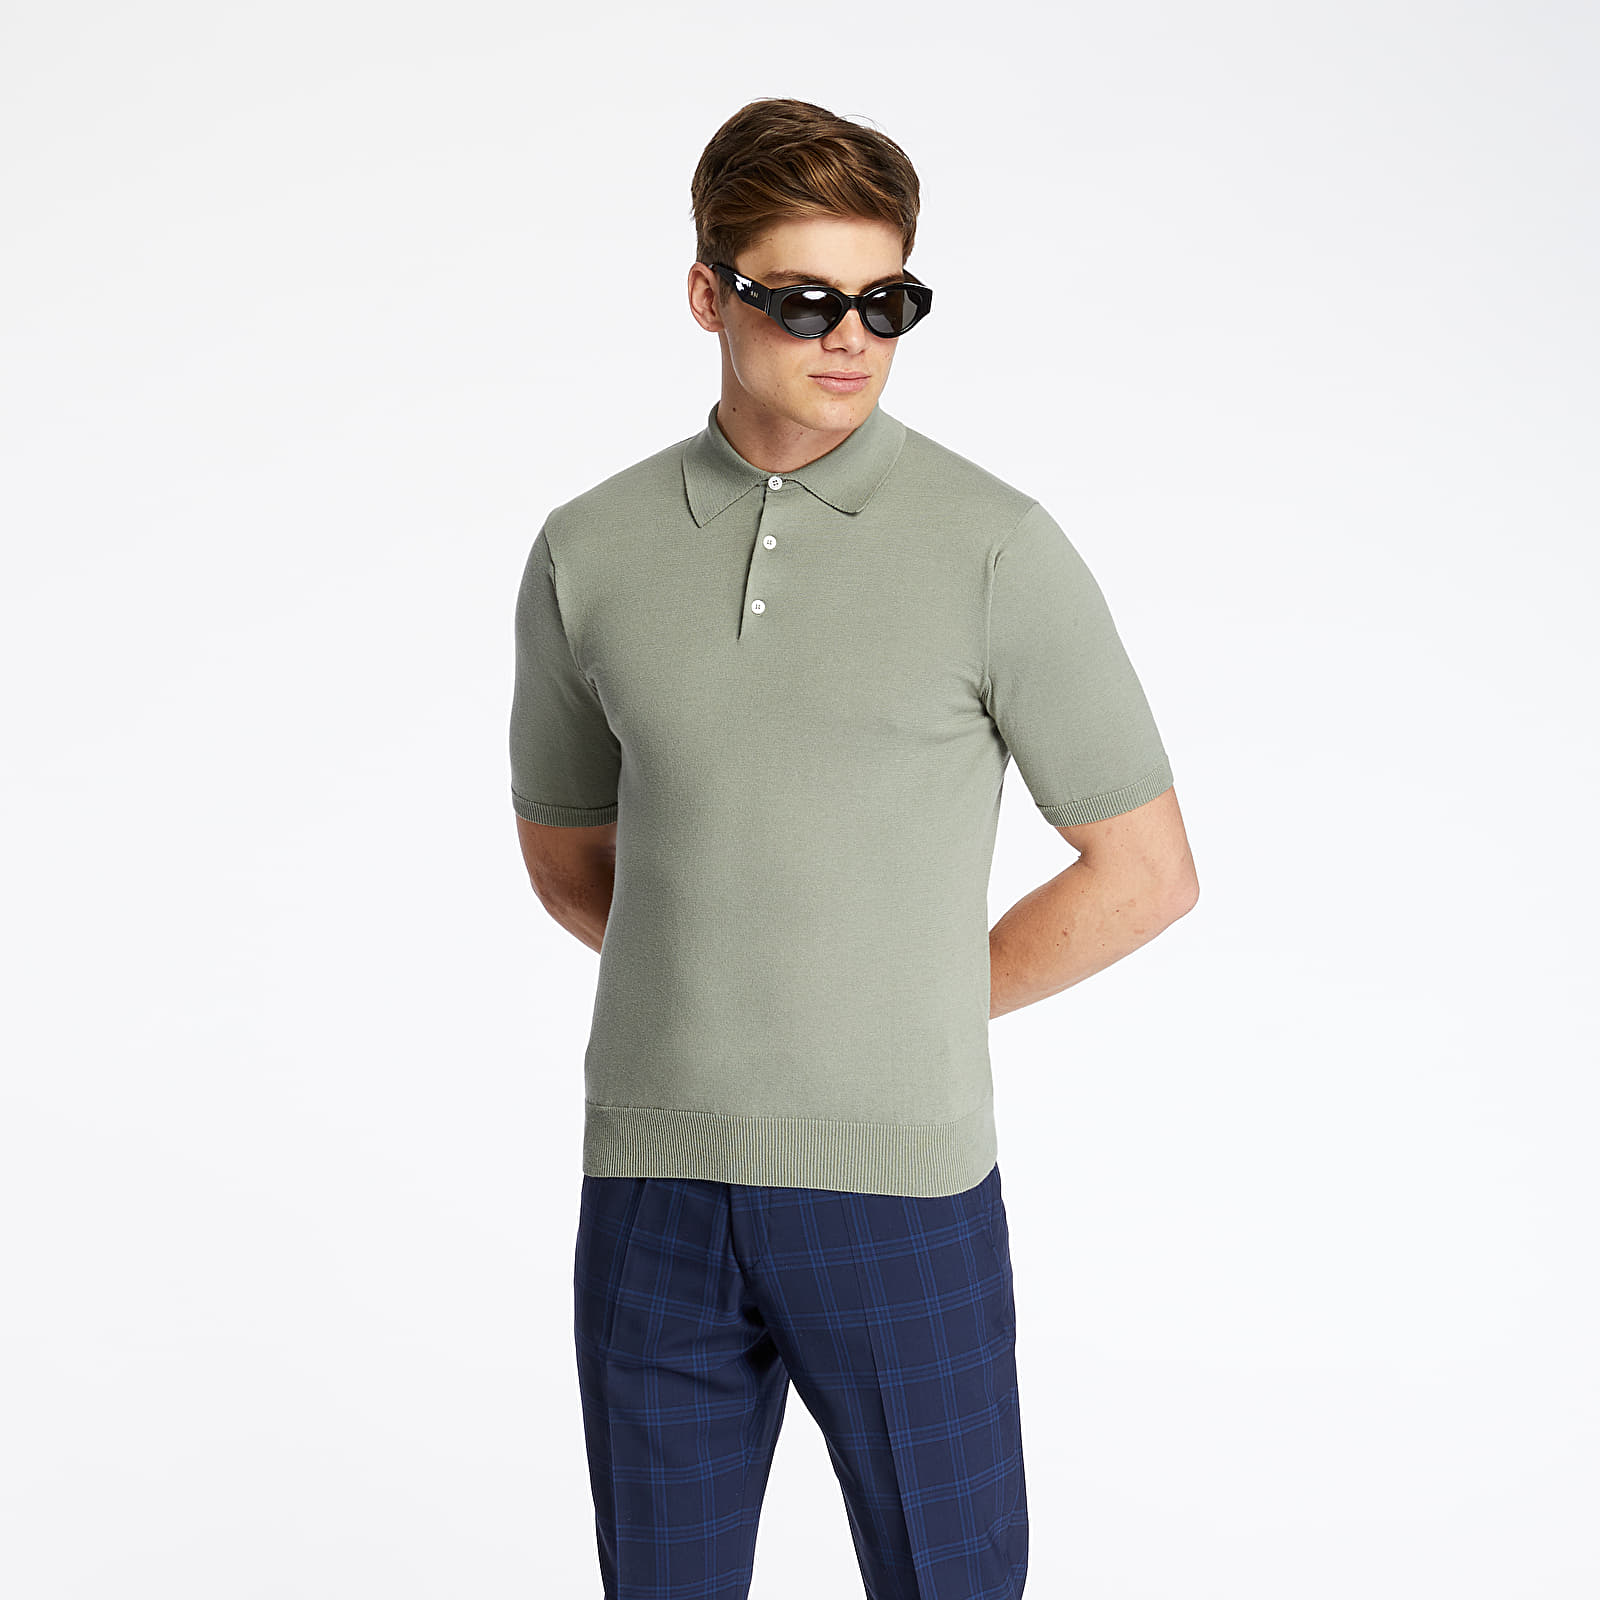 T-shirts Pietro Filipi Men's Knitted Polo Shirt Menthol